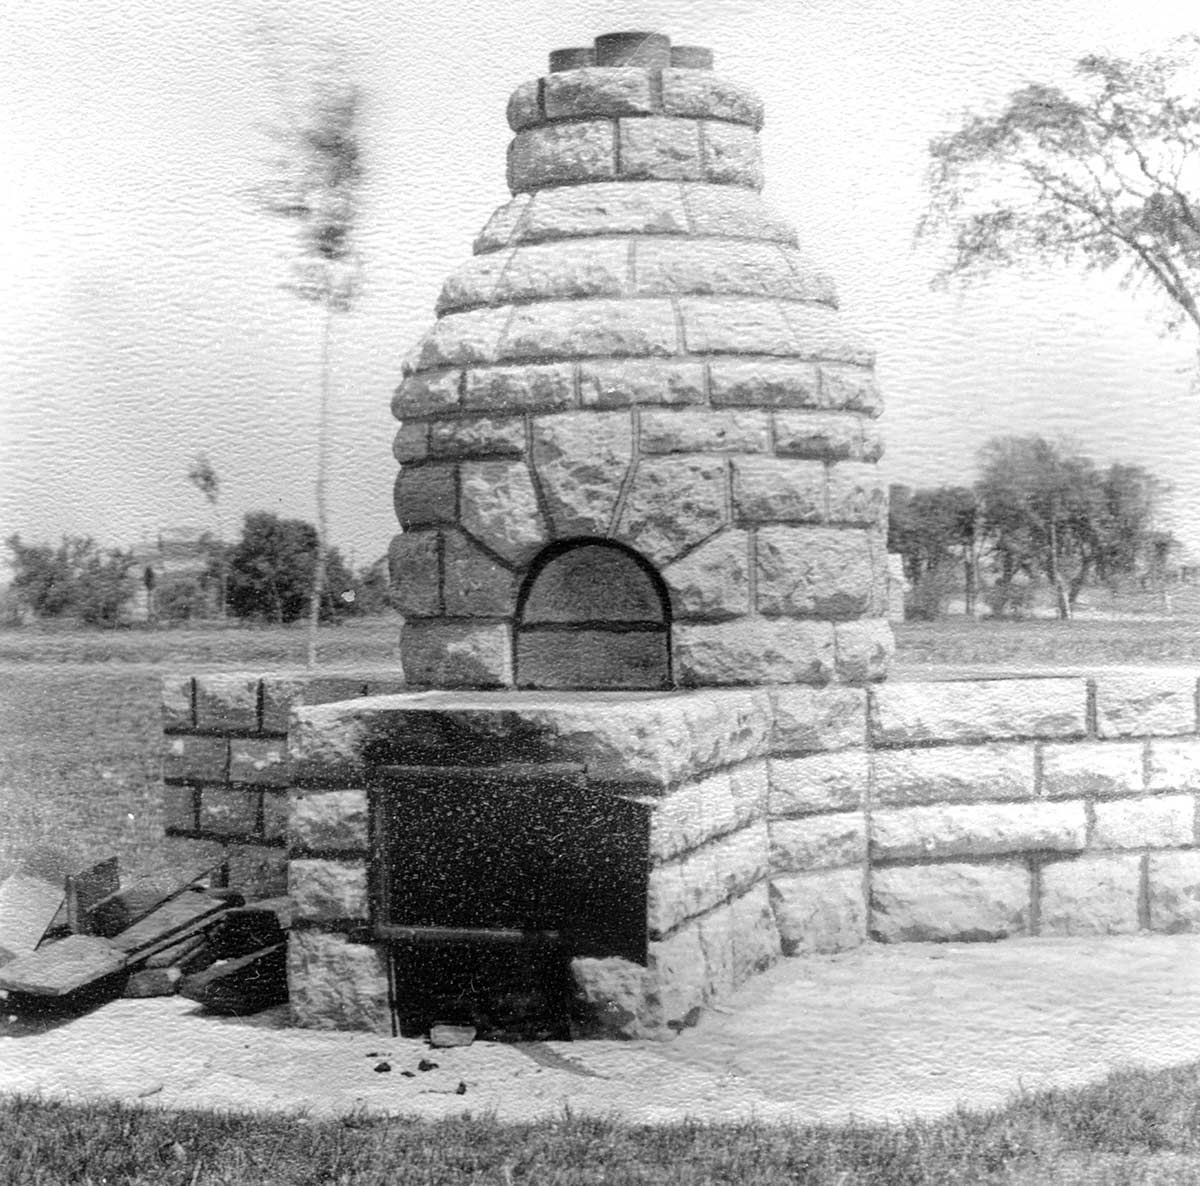 Beehive fireplace in Excelsior Boulevard Roadside Parking Area, Lilac Way